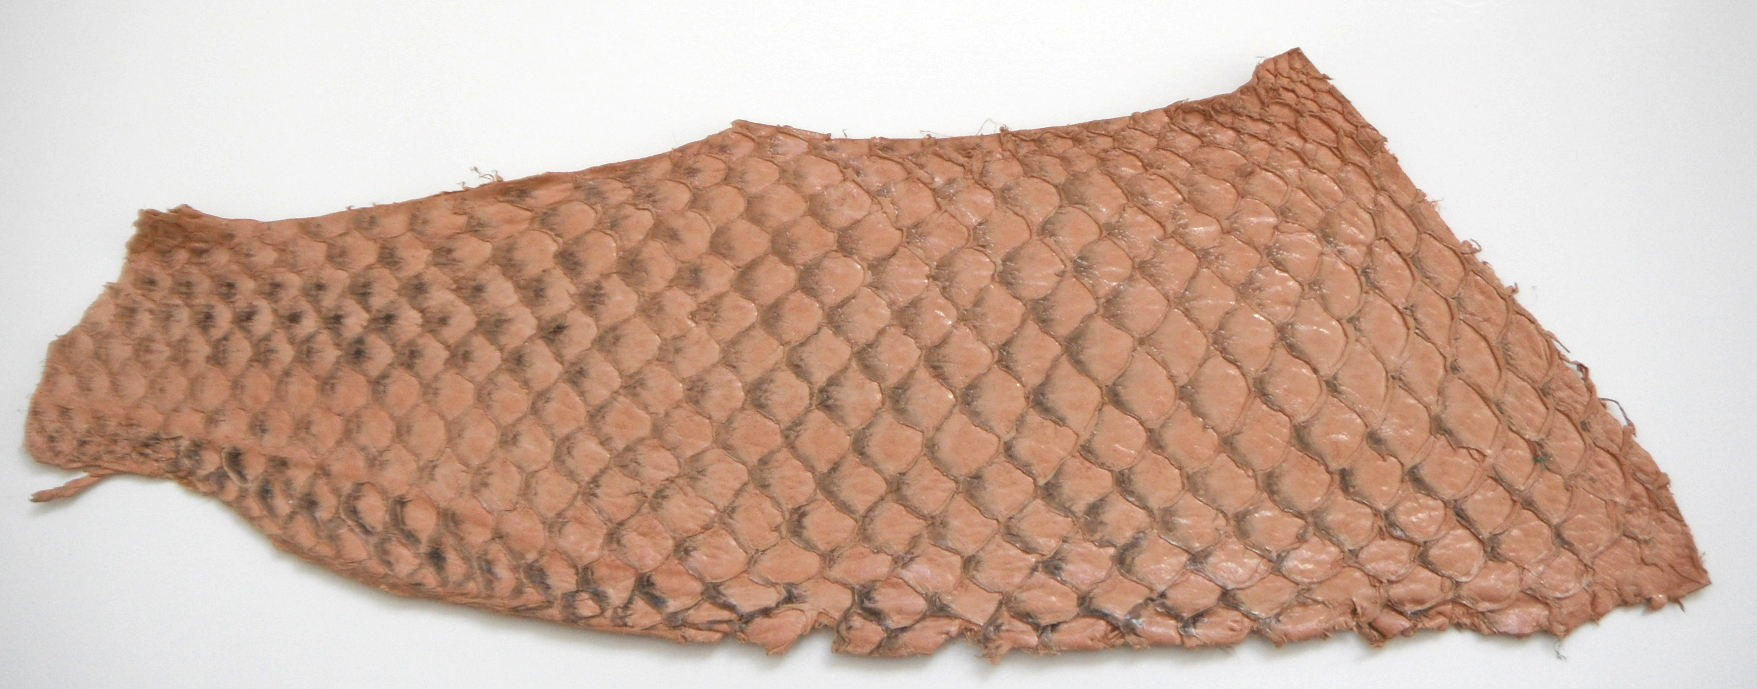 Eco friendly handmade soft suede Pink Tilapia Fish Skin Leather.